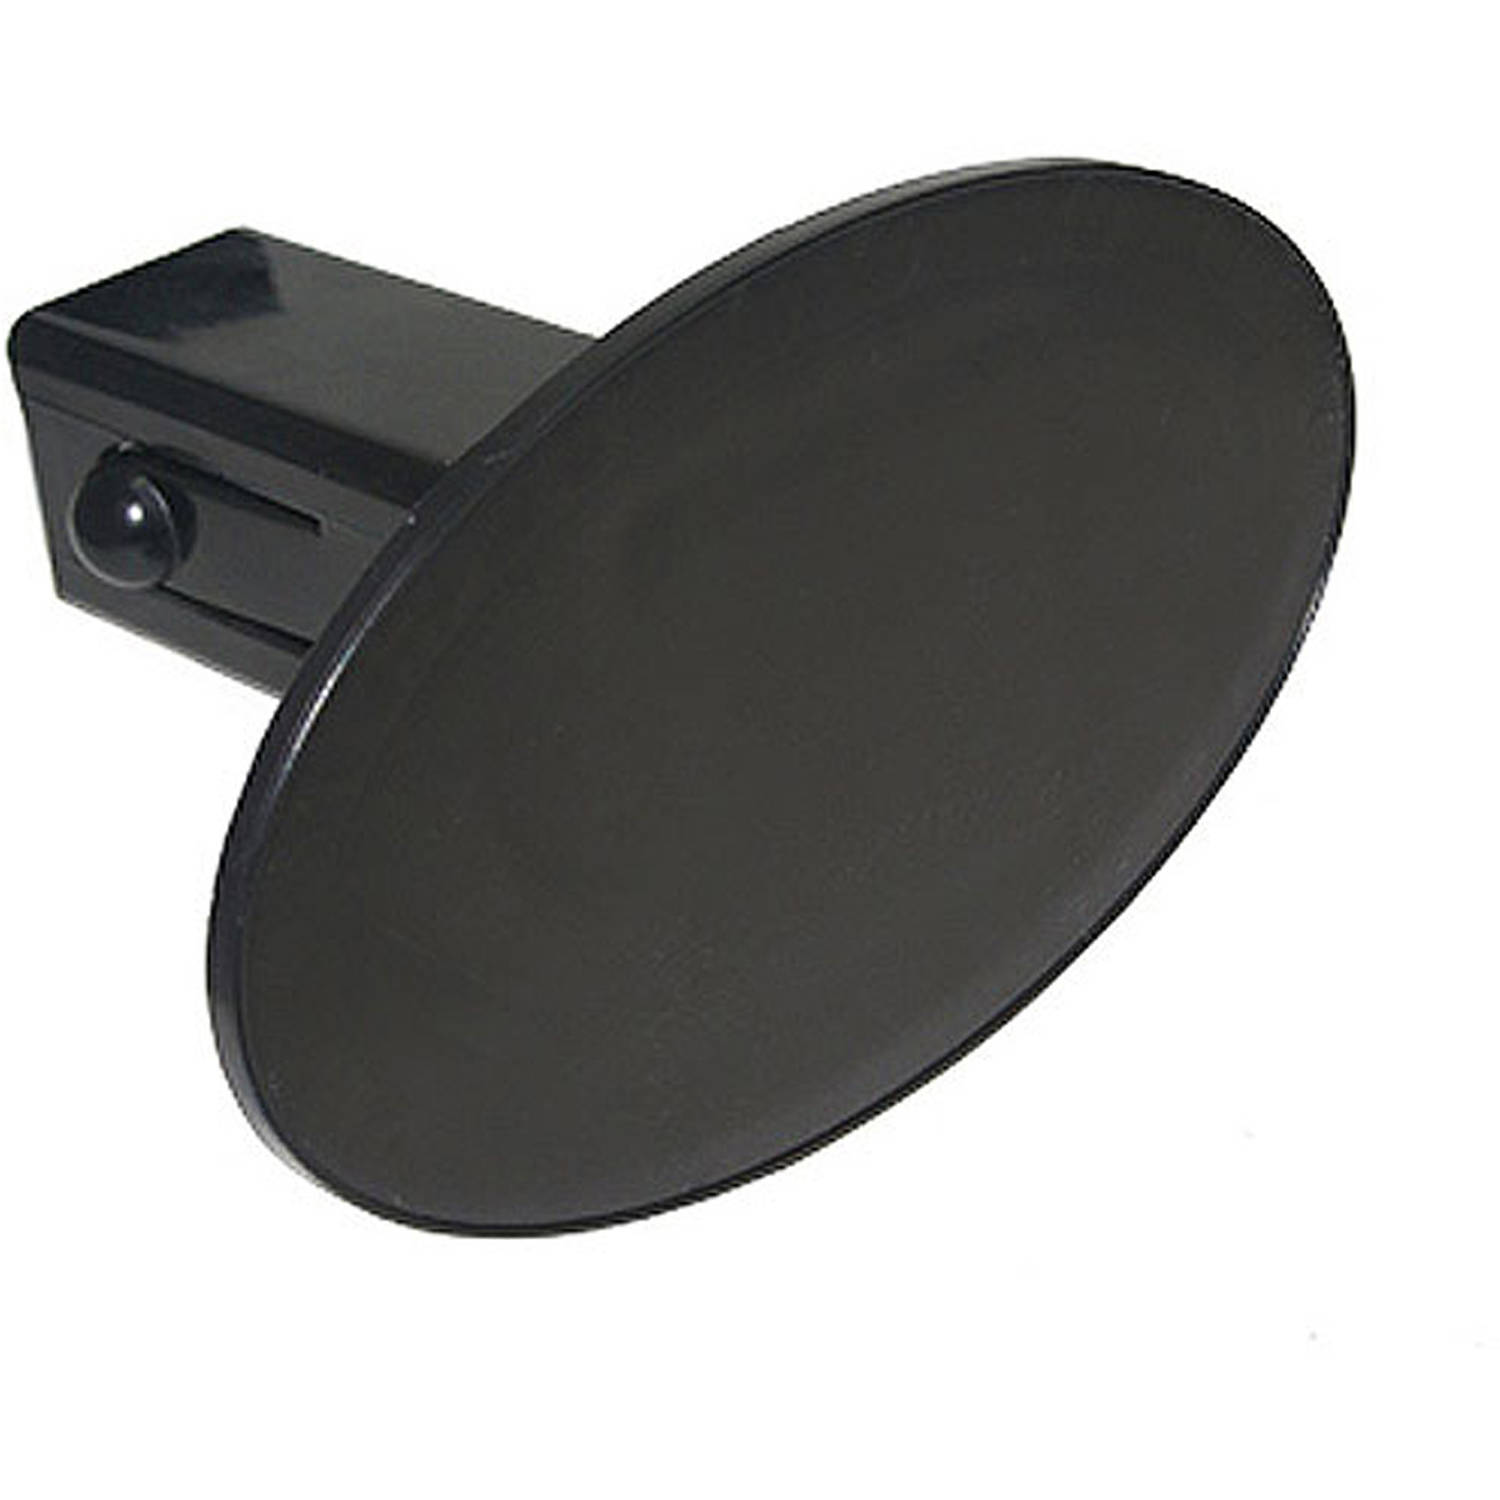 "1.25"" Oval Tow Trailer Hitch Cover Plug Insert by Graphics and More"